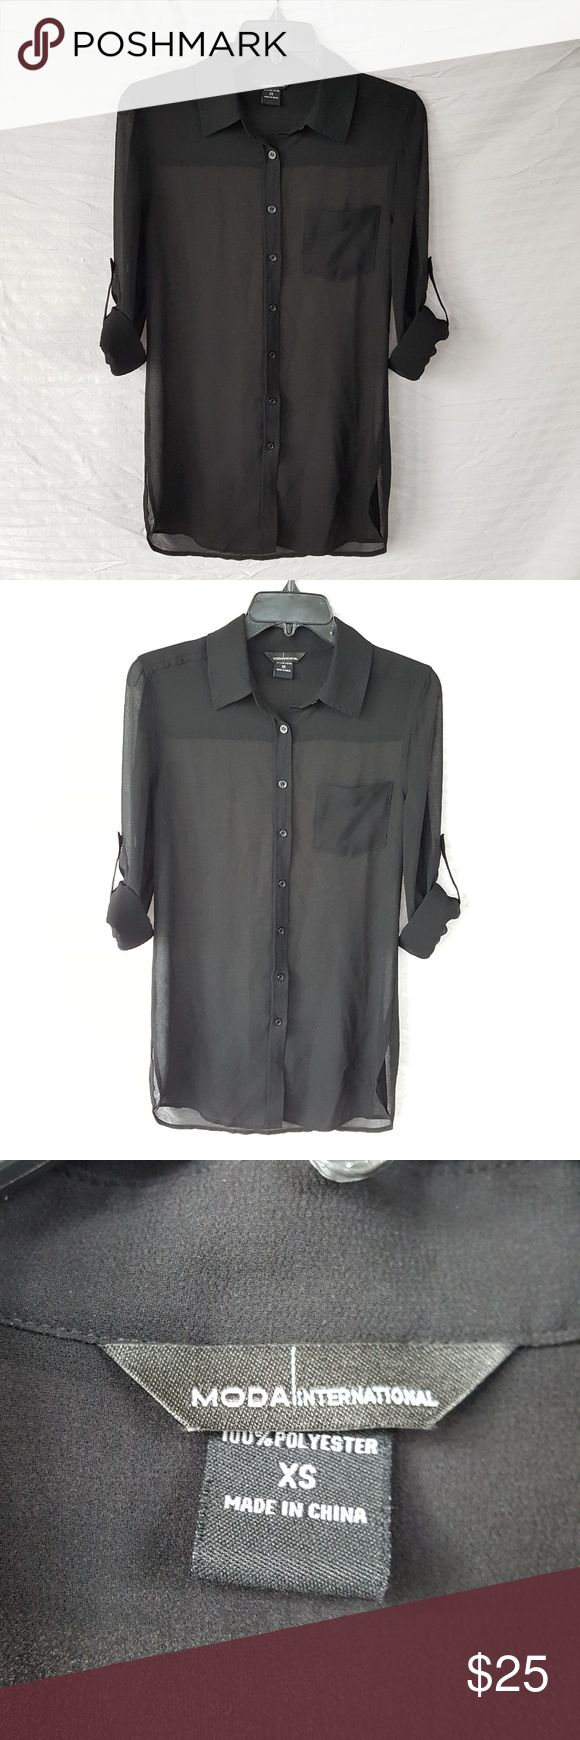 Victoria's Secret Button Down Sheer Black Victoria's Secret button down blouse, top, sheer black, sleeves can be rolled and buttoned up, free flowing loose fit.  Can be worn closed or open kimono style.  In excellent condition.  Bought through Victoria's Secret website, tag says Moda International. Victoria's Secret Tops